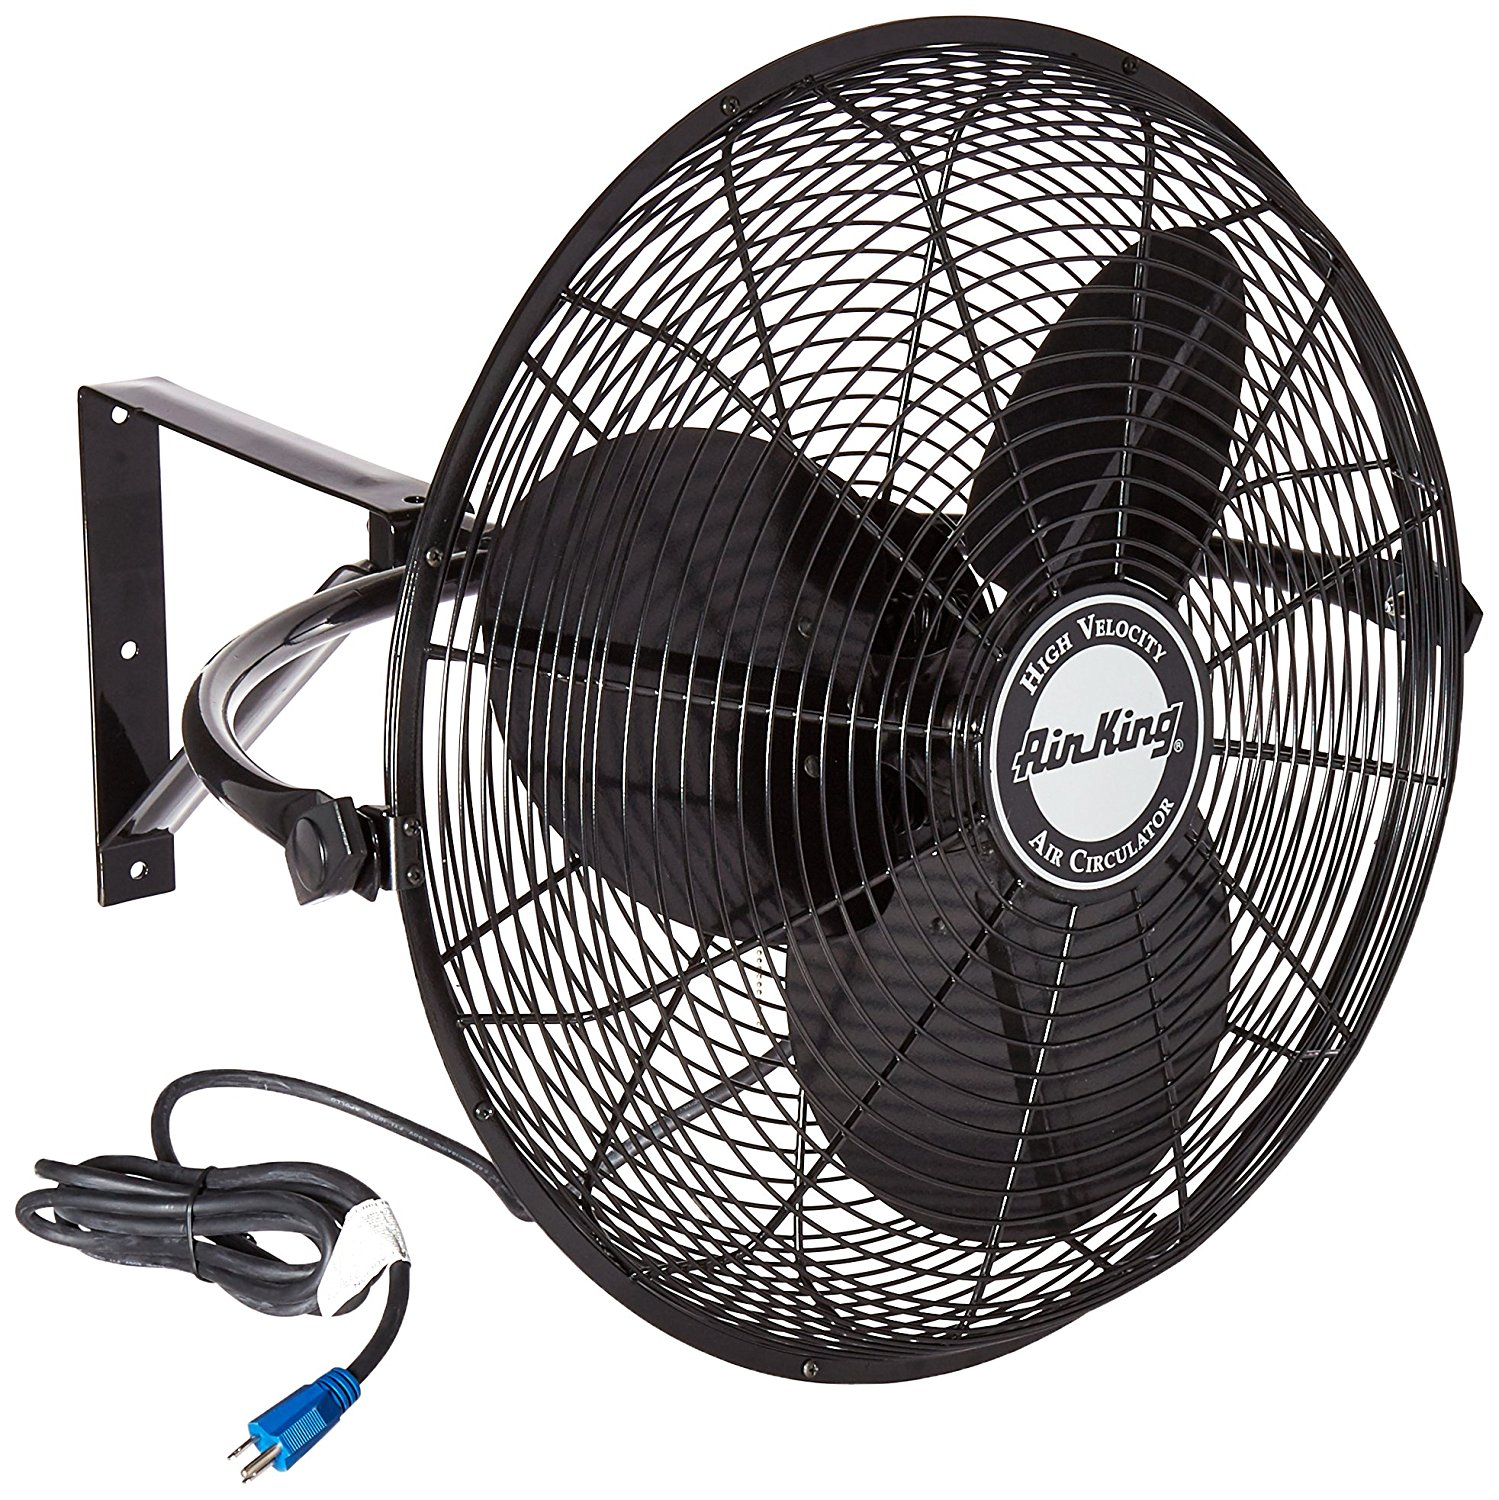 Wall mount fan products tagged with 100 wall mounted fans for 12 inch window exhaust fan